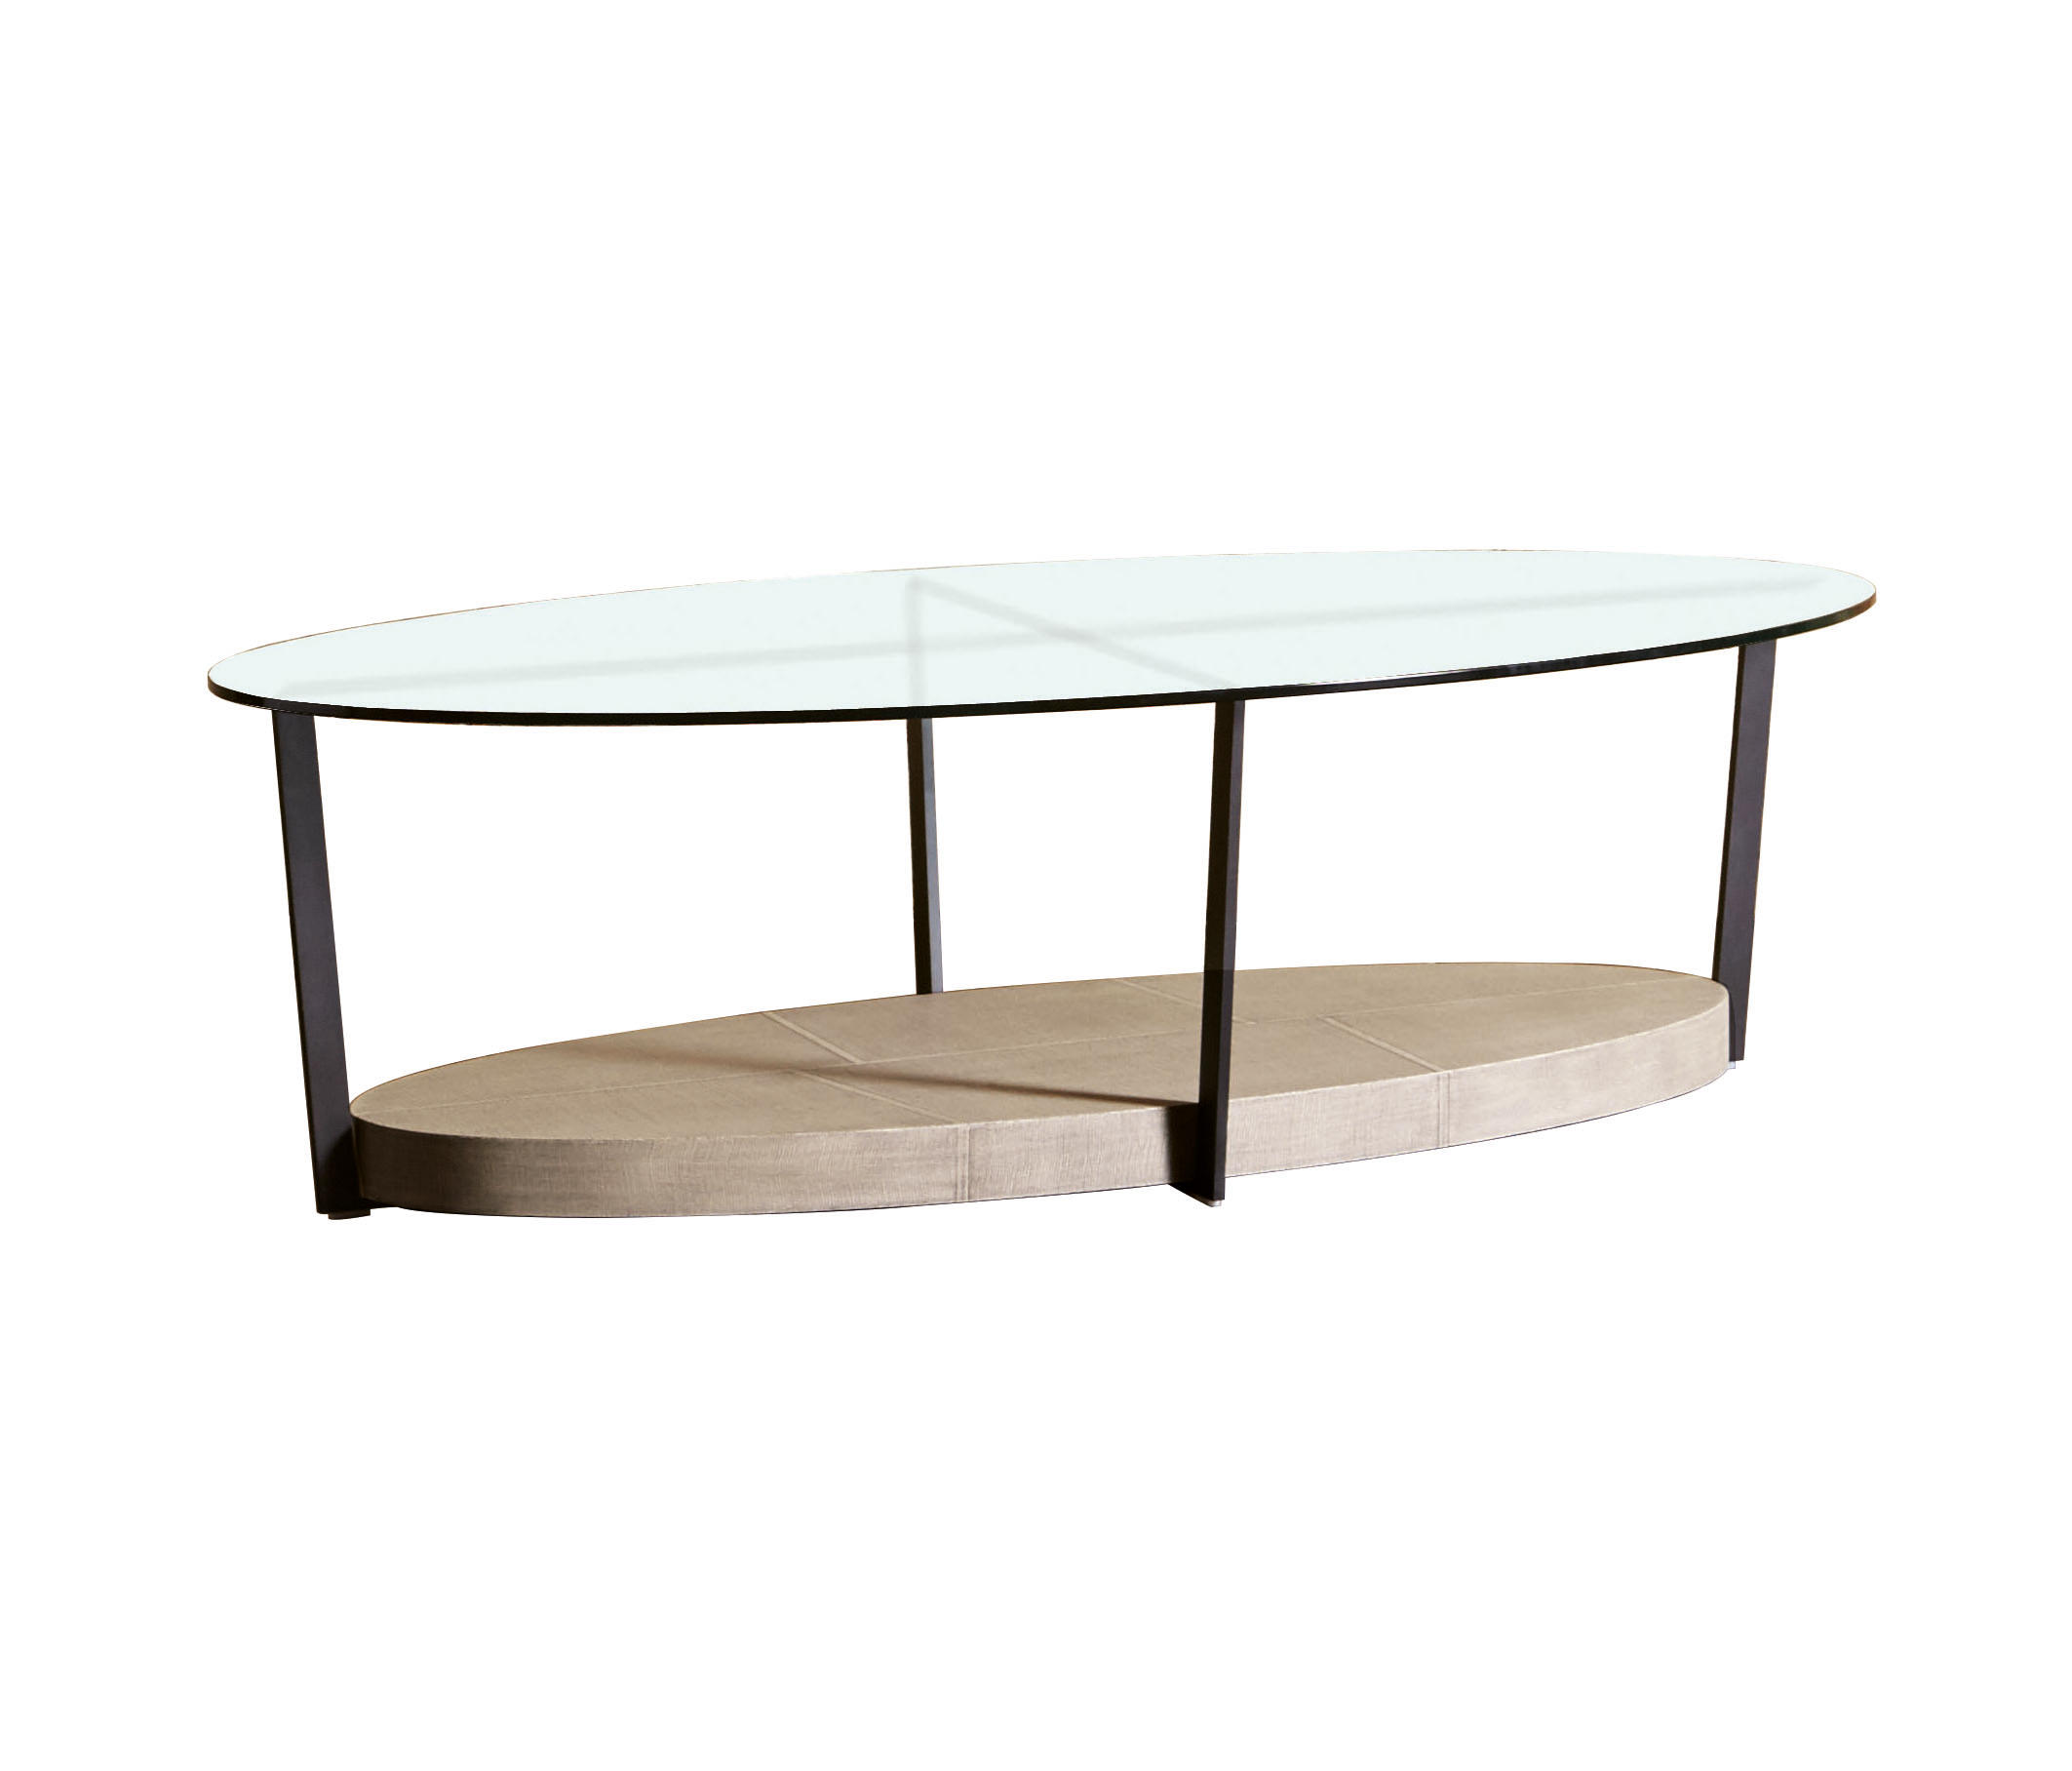 IRON TAVOLINO OVALE CON VETRO - Coffee tables from SanPatrignano ...